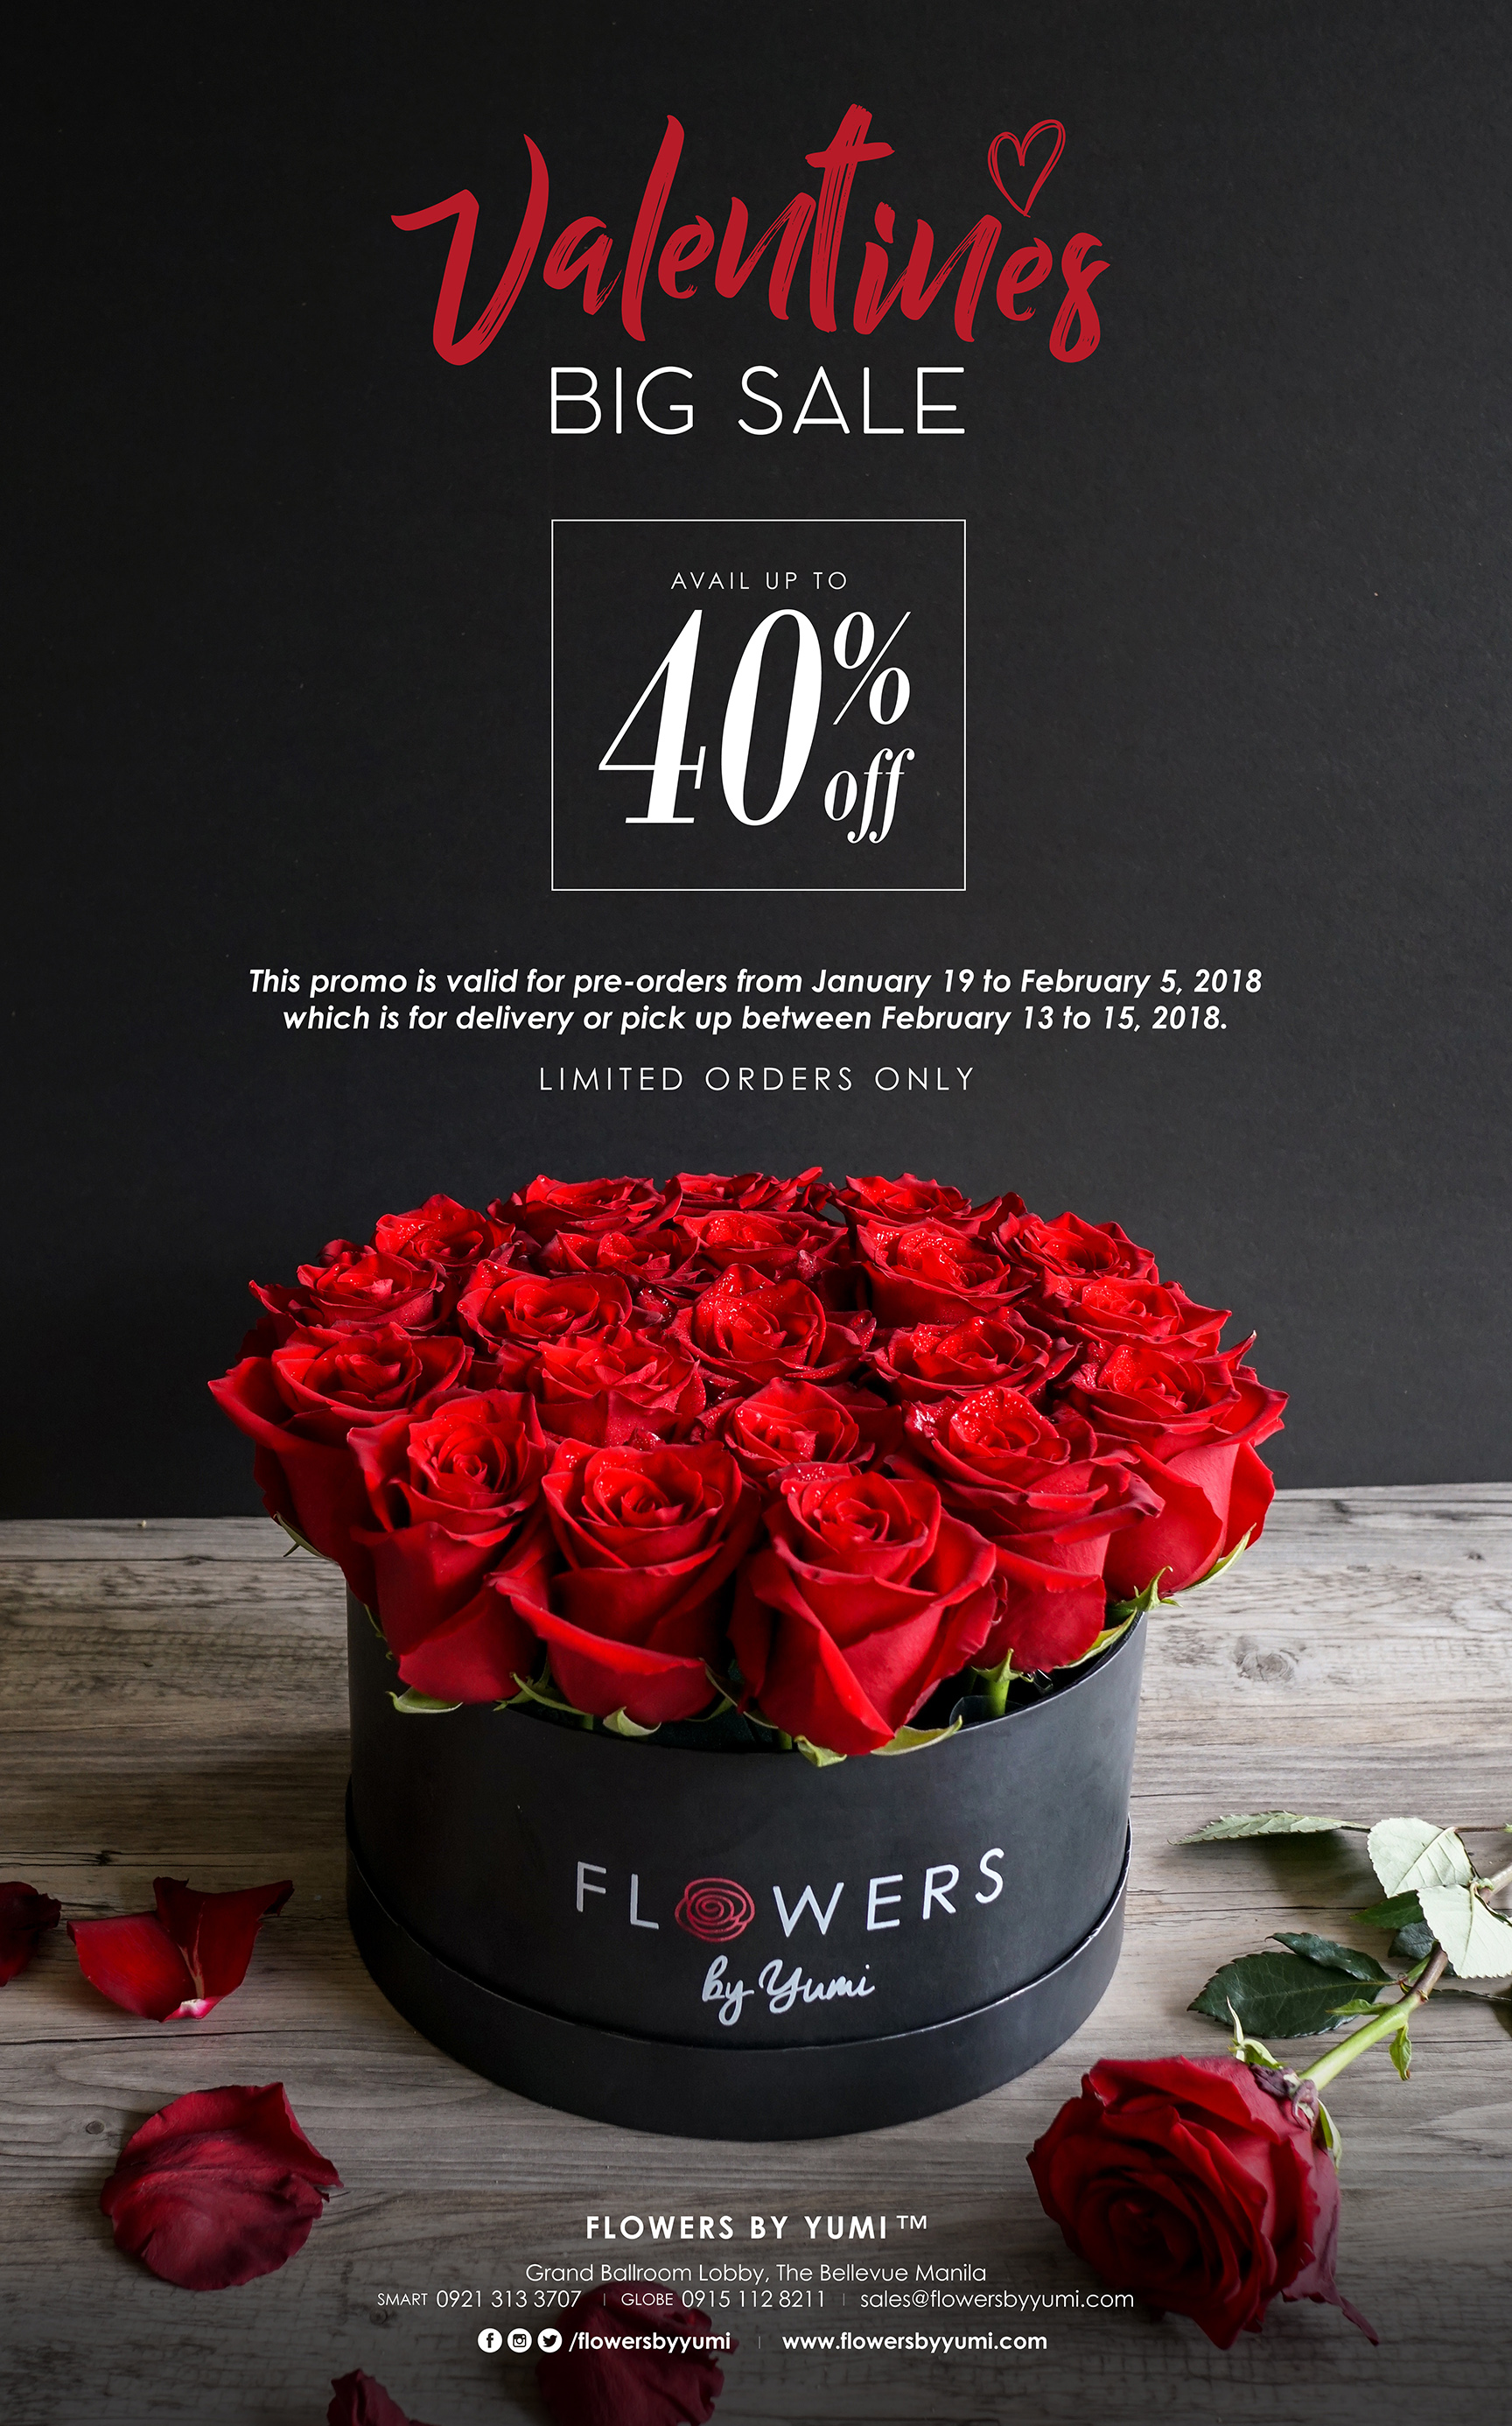 Promo Valentines Big Sale 2018 Flowers By Yumi